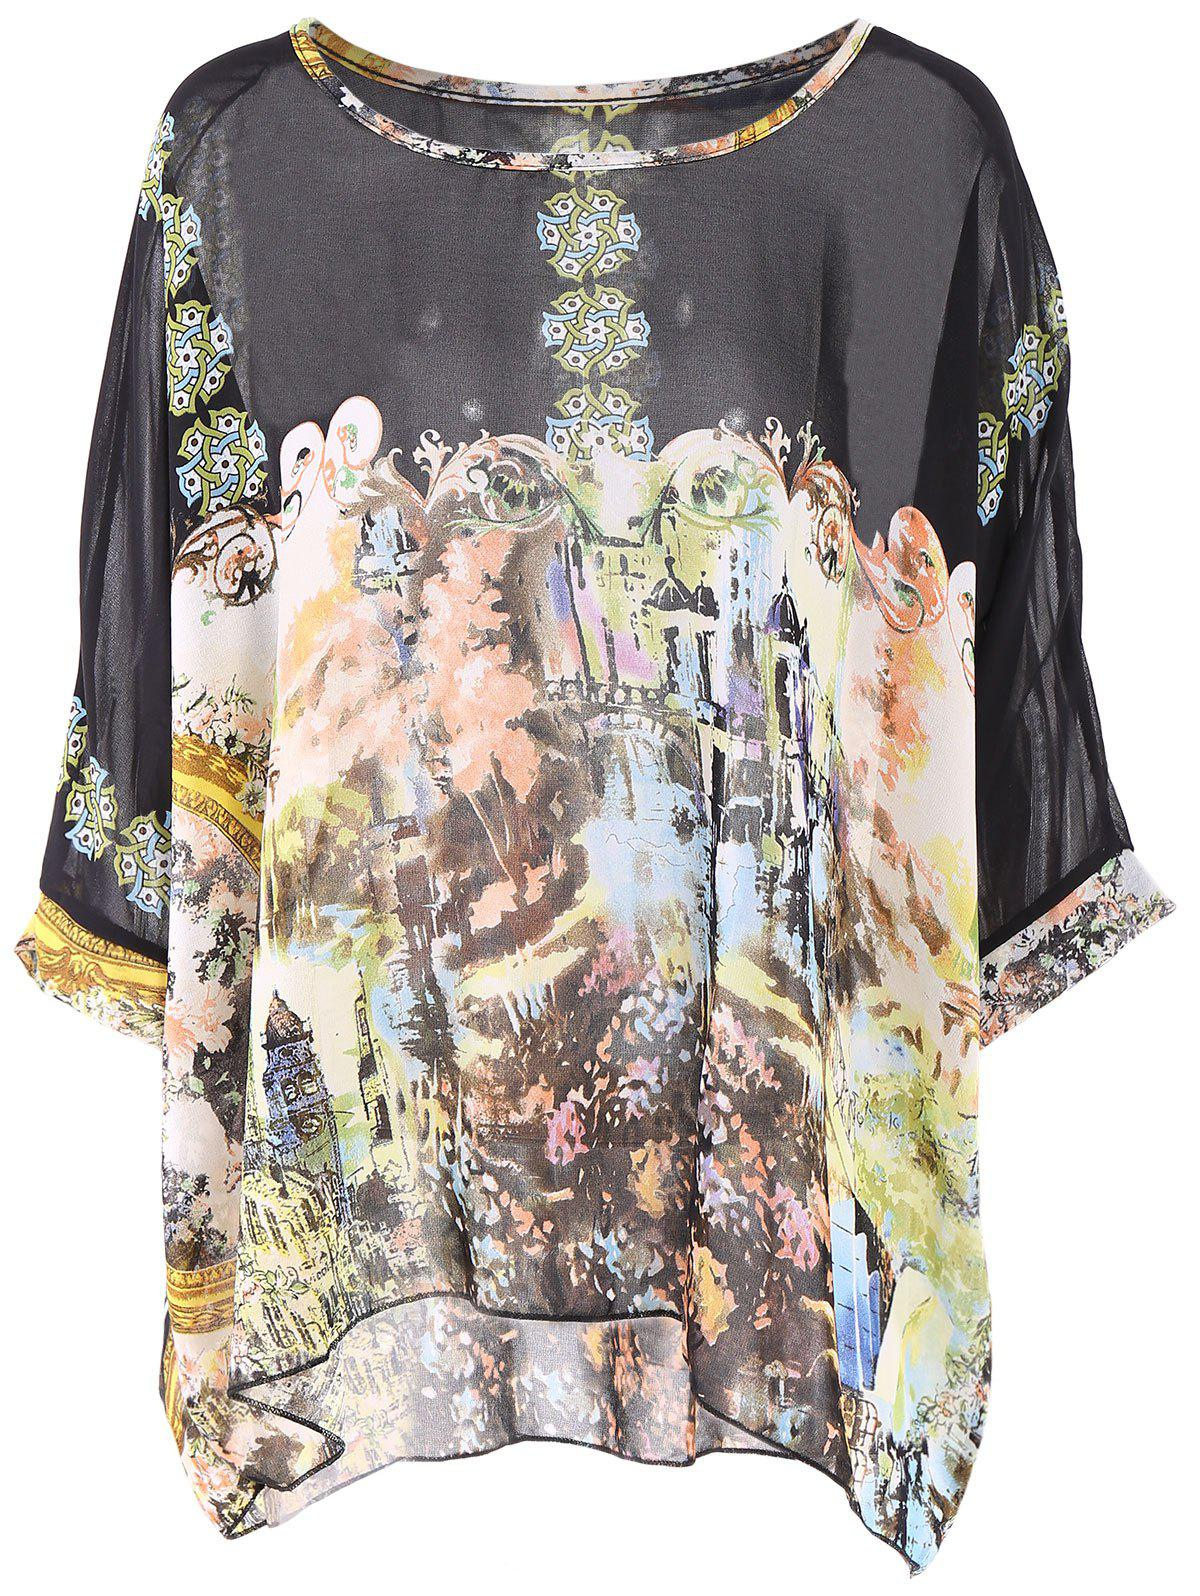 Bohemian Scoop Neck Printed Loose-Fitting 3/4 Sleeve Chiffon Blouse For Women